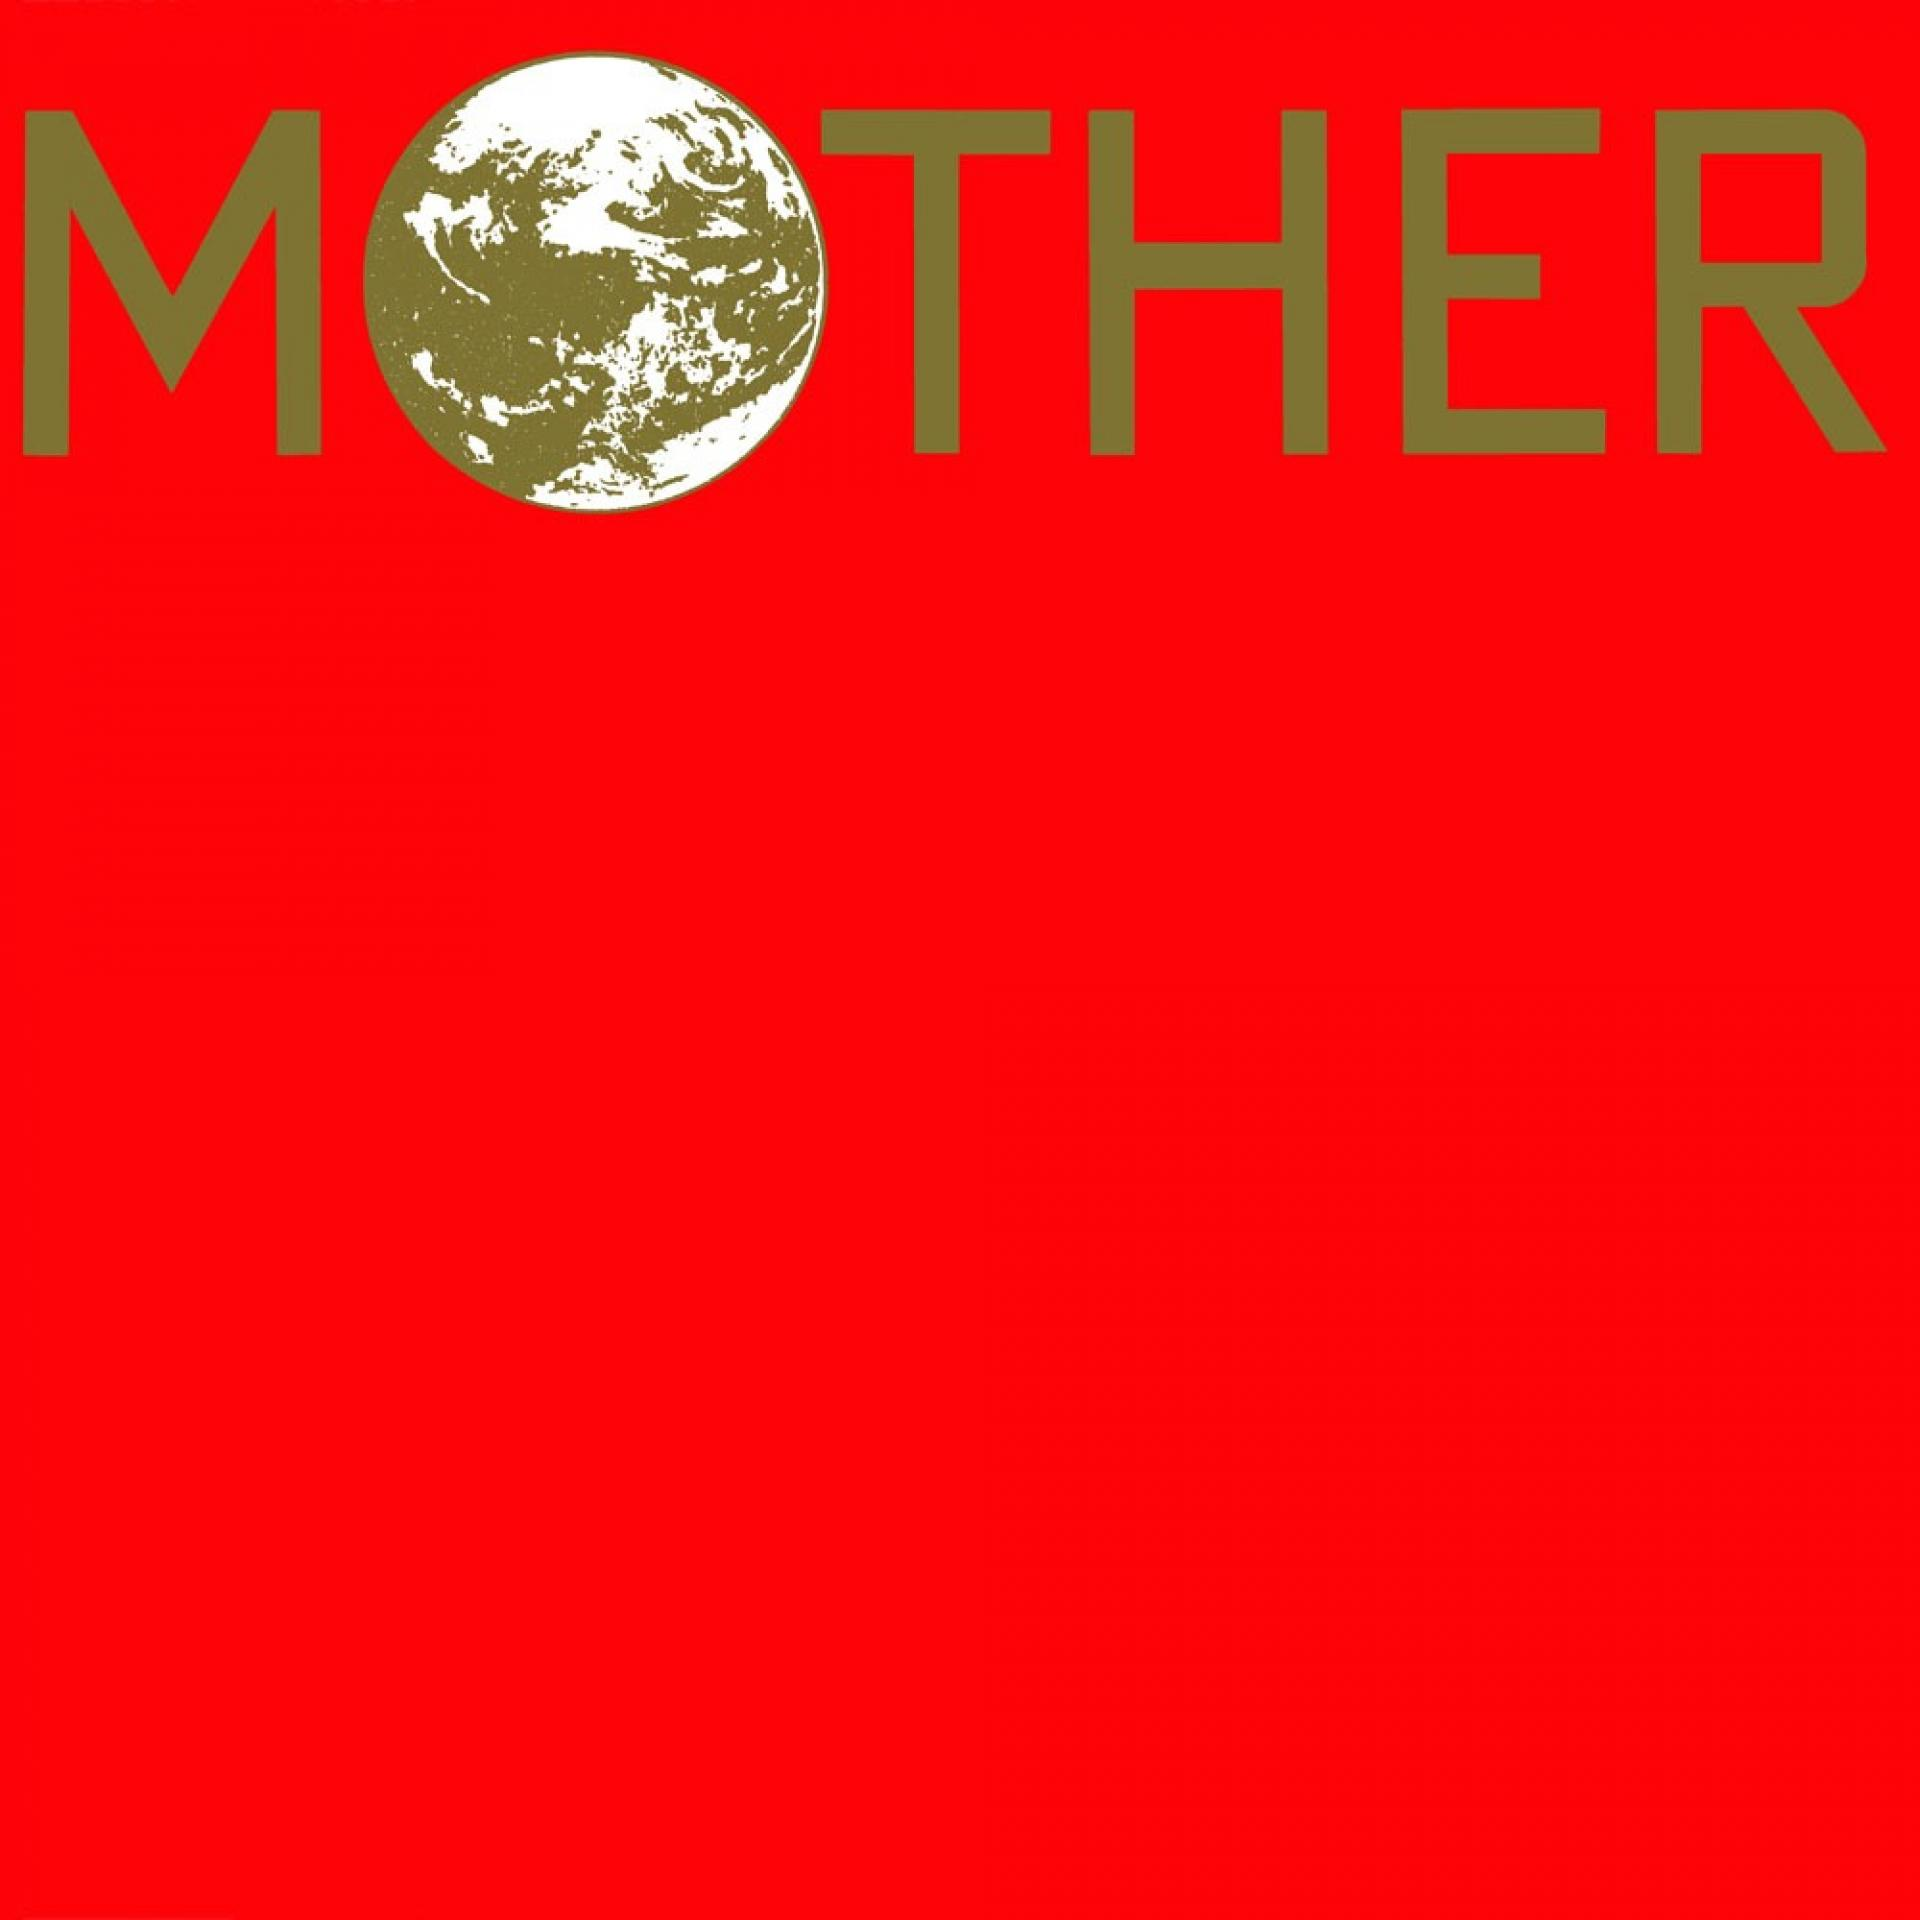 Mother (video game, turn-based RPG, science fiction, comedy